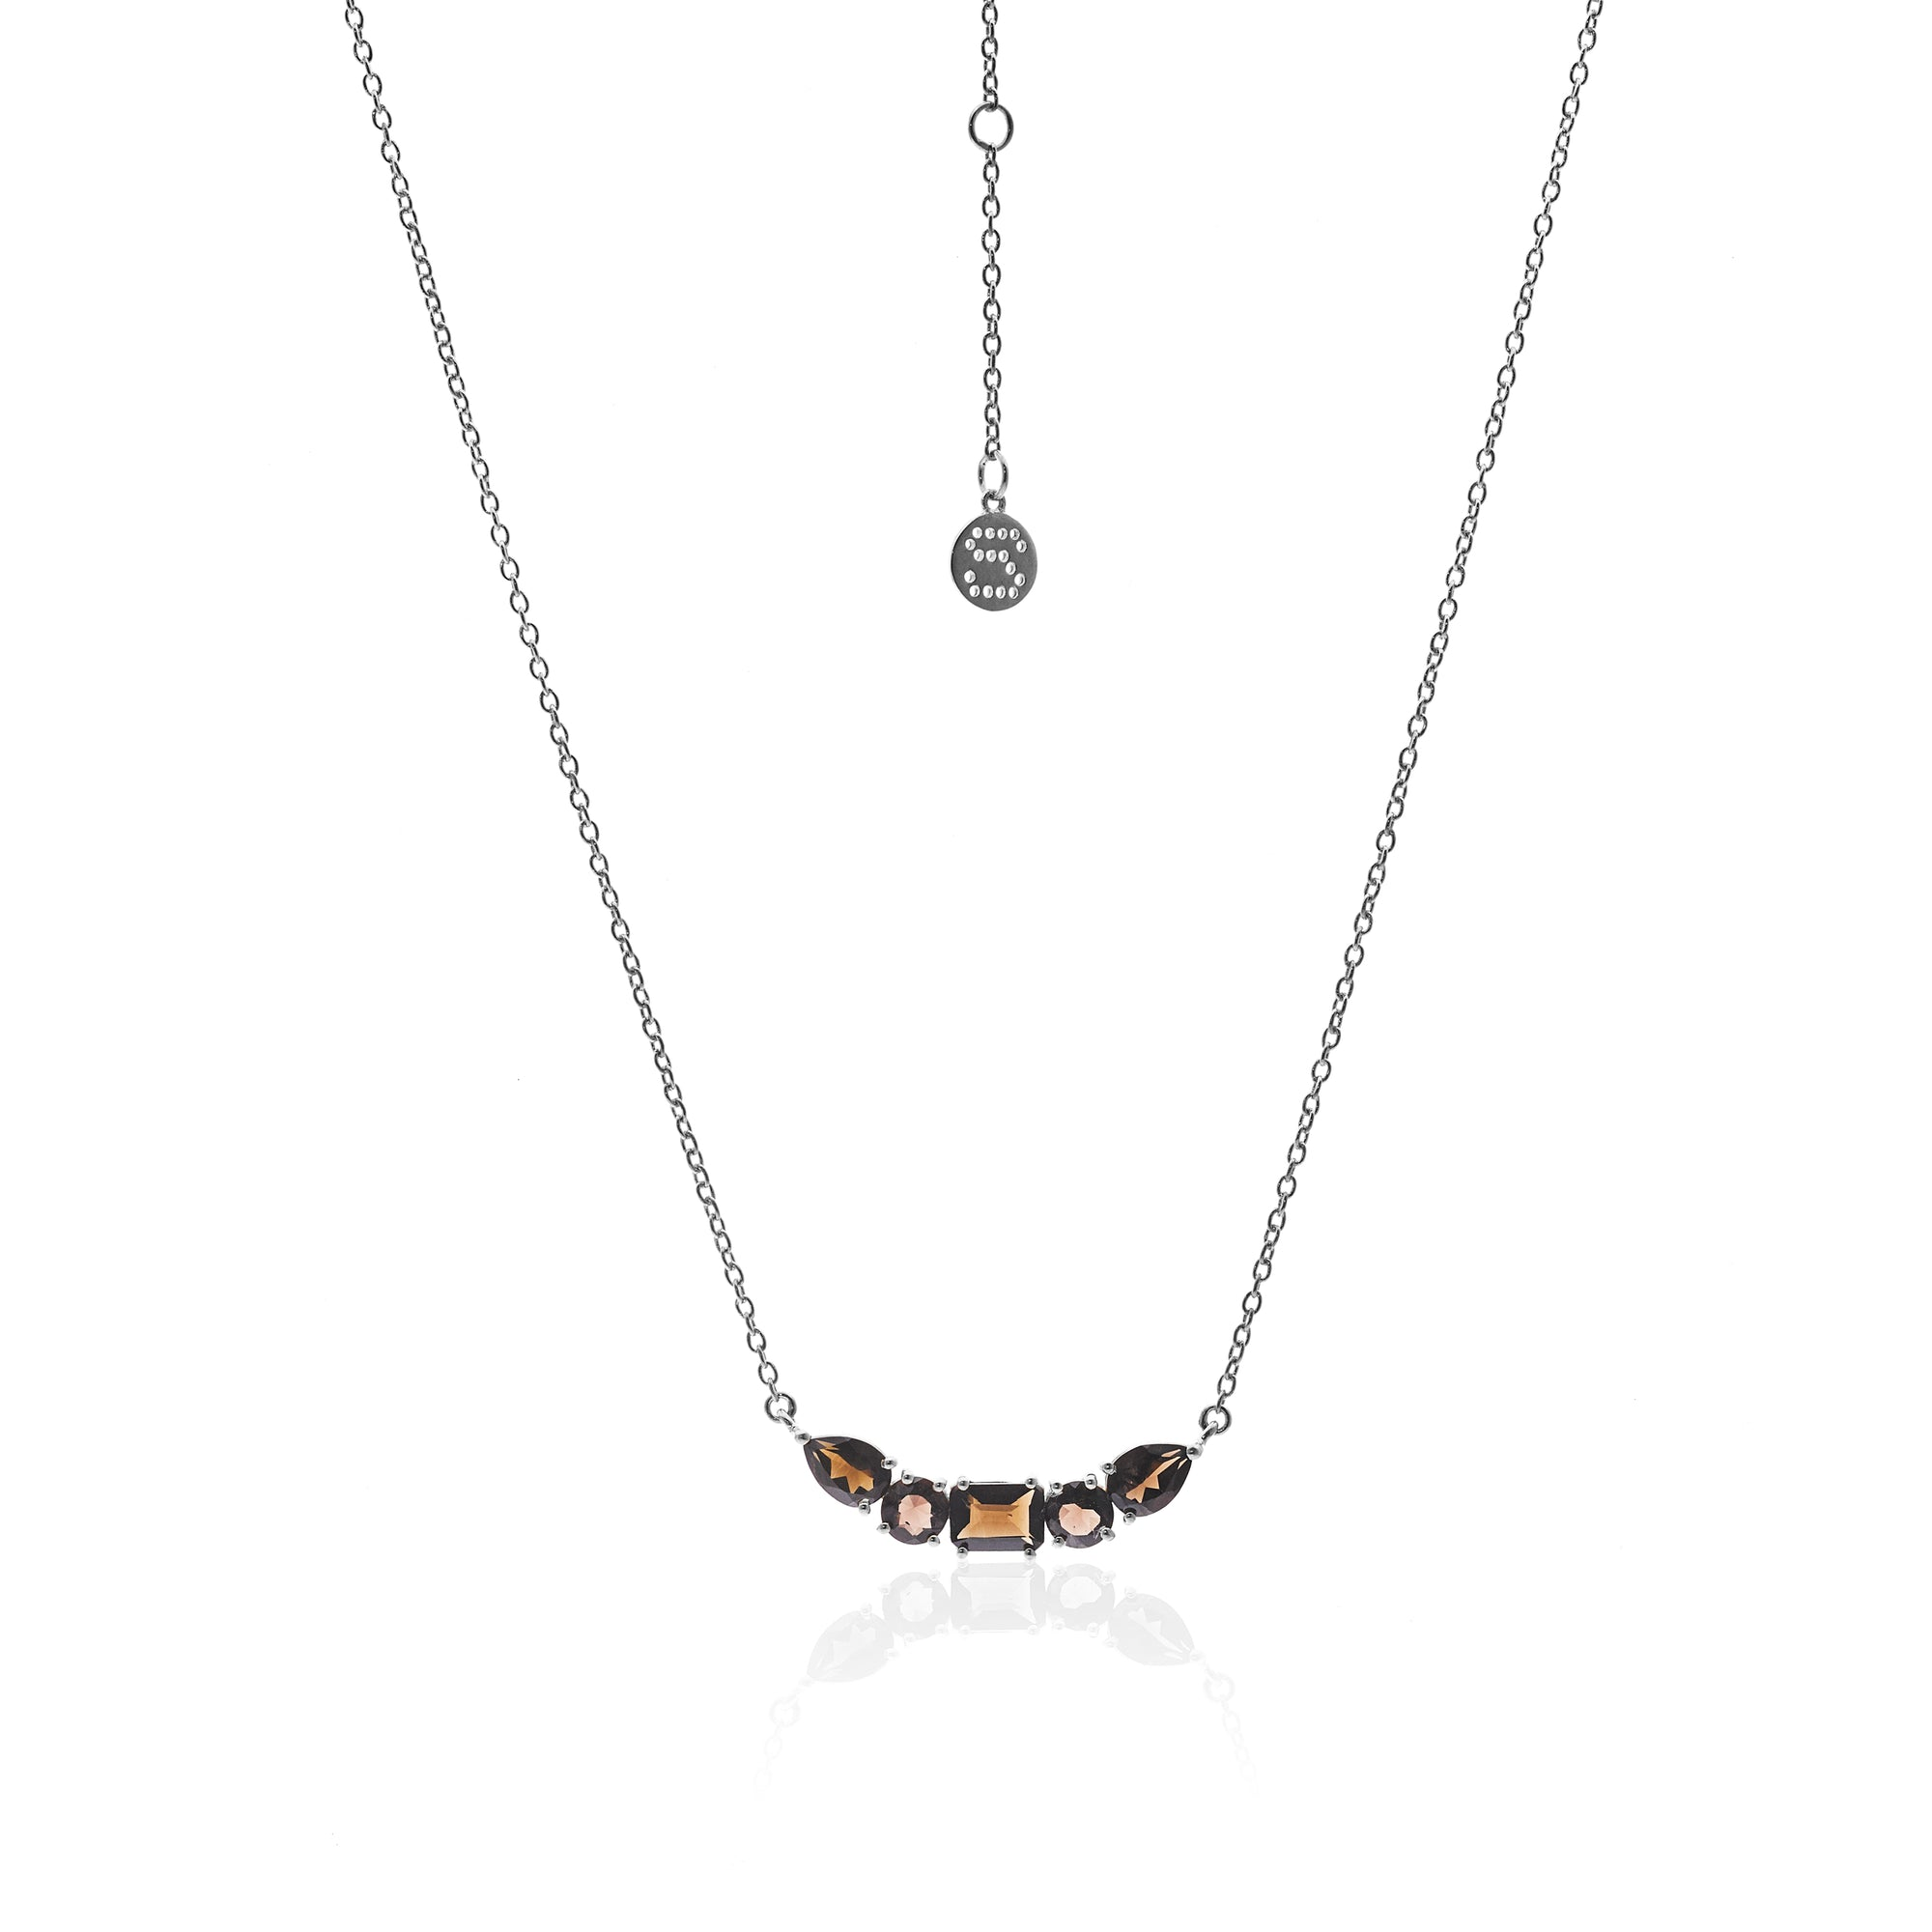 Silk&Steel Jewellery Smokey Quartz and Silver Amore Necklace From Aria Collection